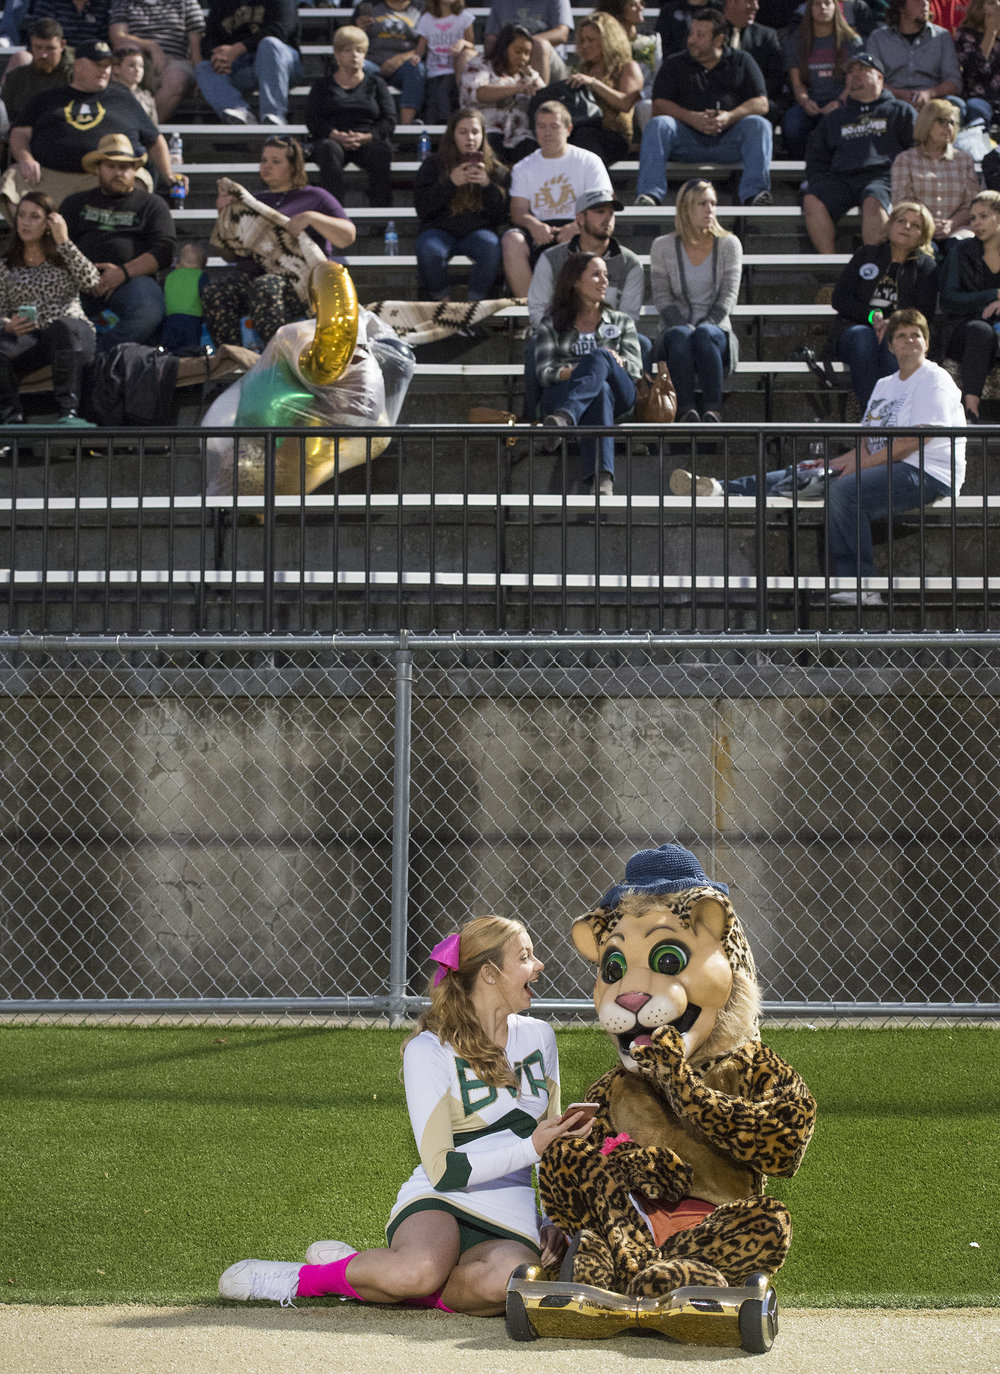 Sophomore Belle Vernon cheerleader Sydney Baciak laughs with her friend and mascot Vienna Bertram during the game against Thomas Jefferson on Friday, Oct. 13, 2017 at Belle Vernon Area High School. (Steph Chambers/Post-Gazette)